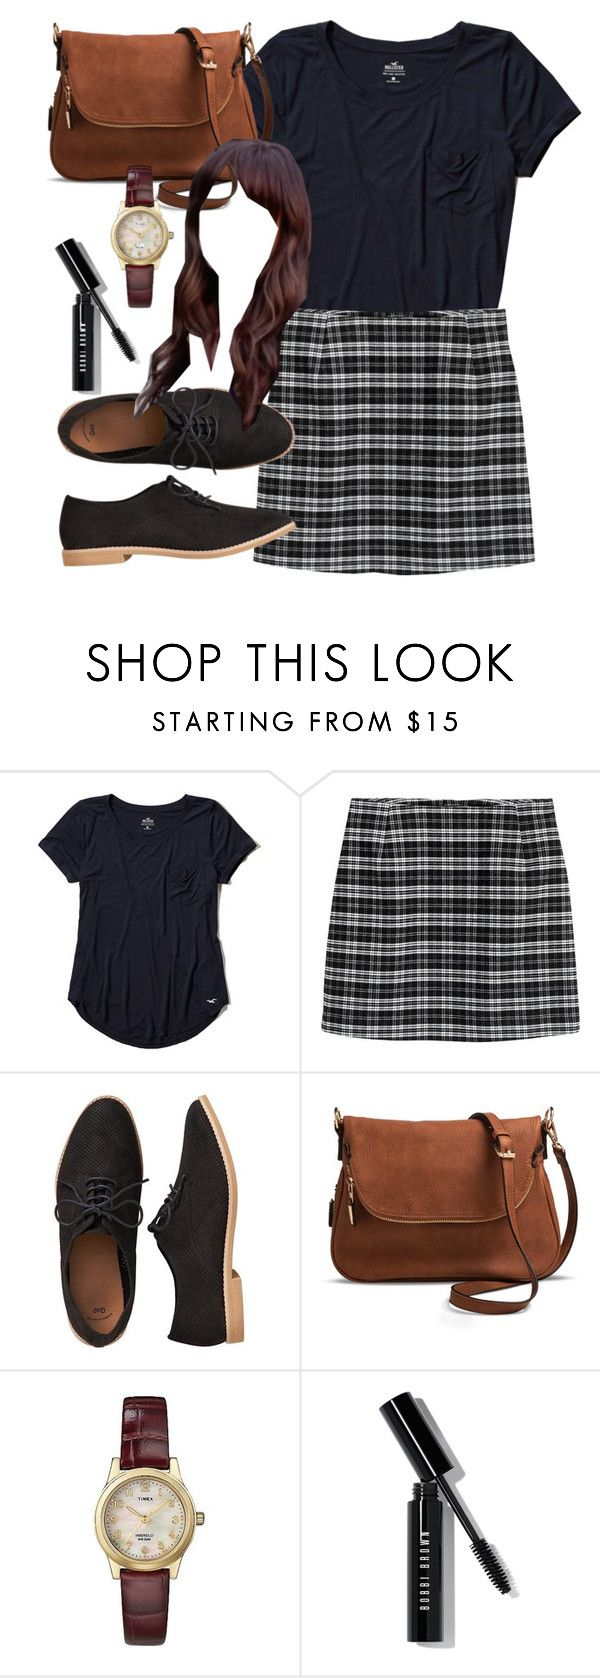 """""""Spencer Hastings inspired outfit with a navy t-shirt"""" by liarsstyle ❤ liked on Polyvore featuring Hollister Co., Gap, Target, Timex, Bobbi Brown Cosmetics, school, college, ss and museum"""